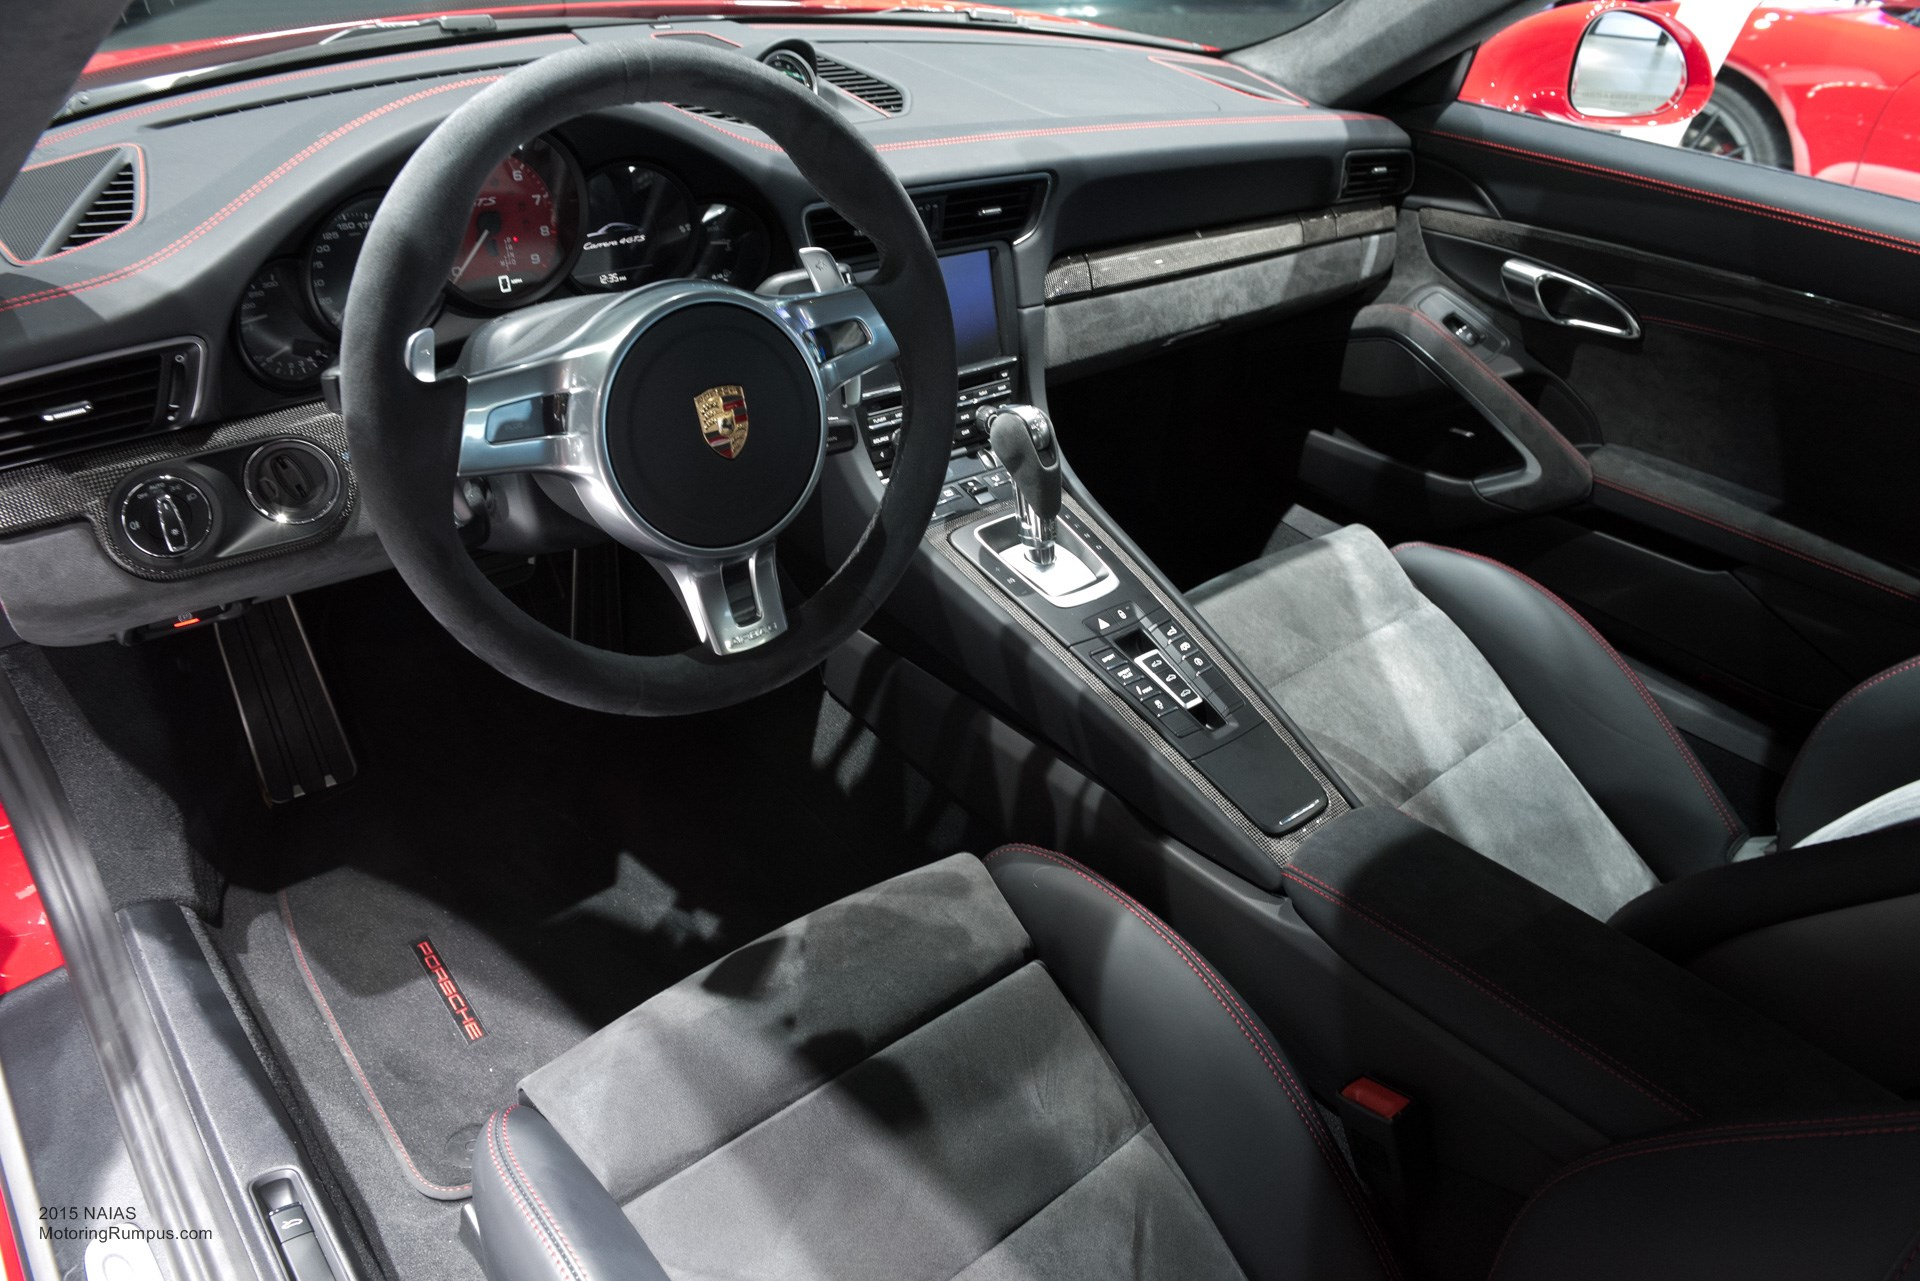 2015 Naias Porsche 911 Carrera 4 Gts Interior Motoring Rumpus